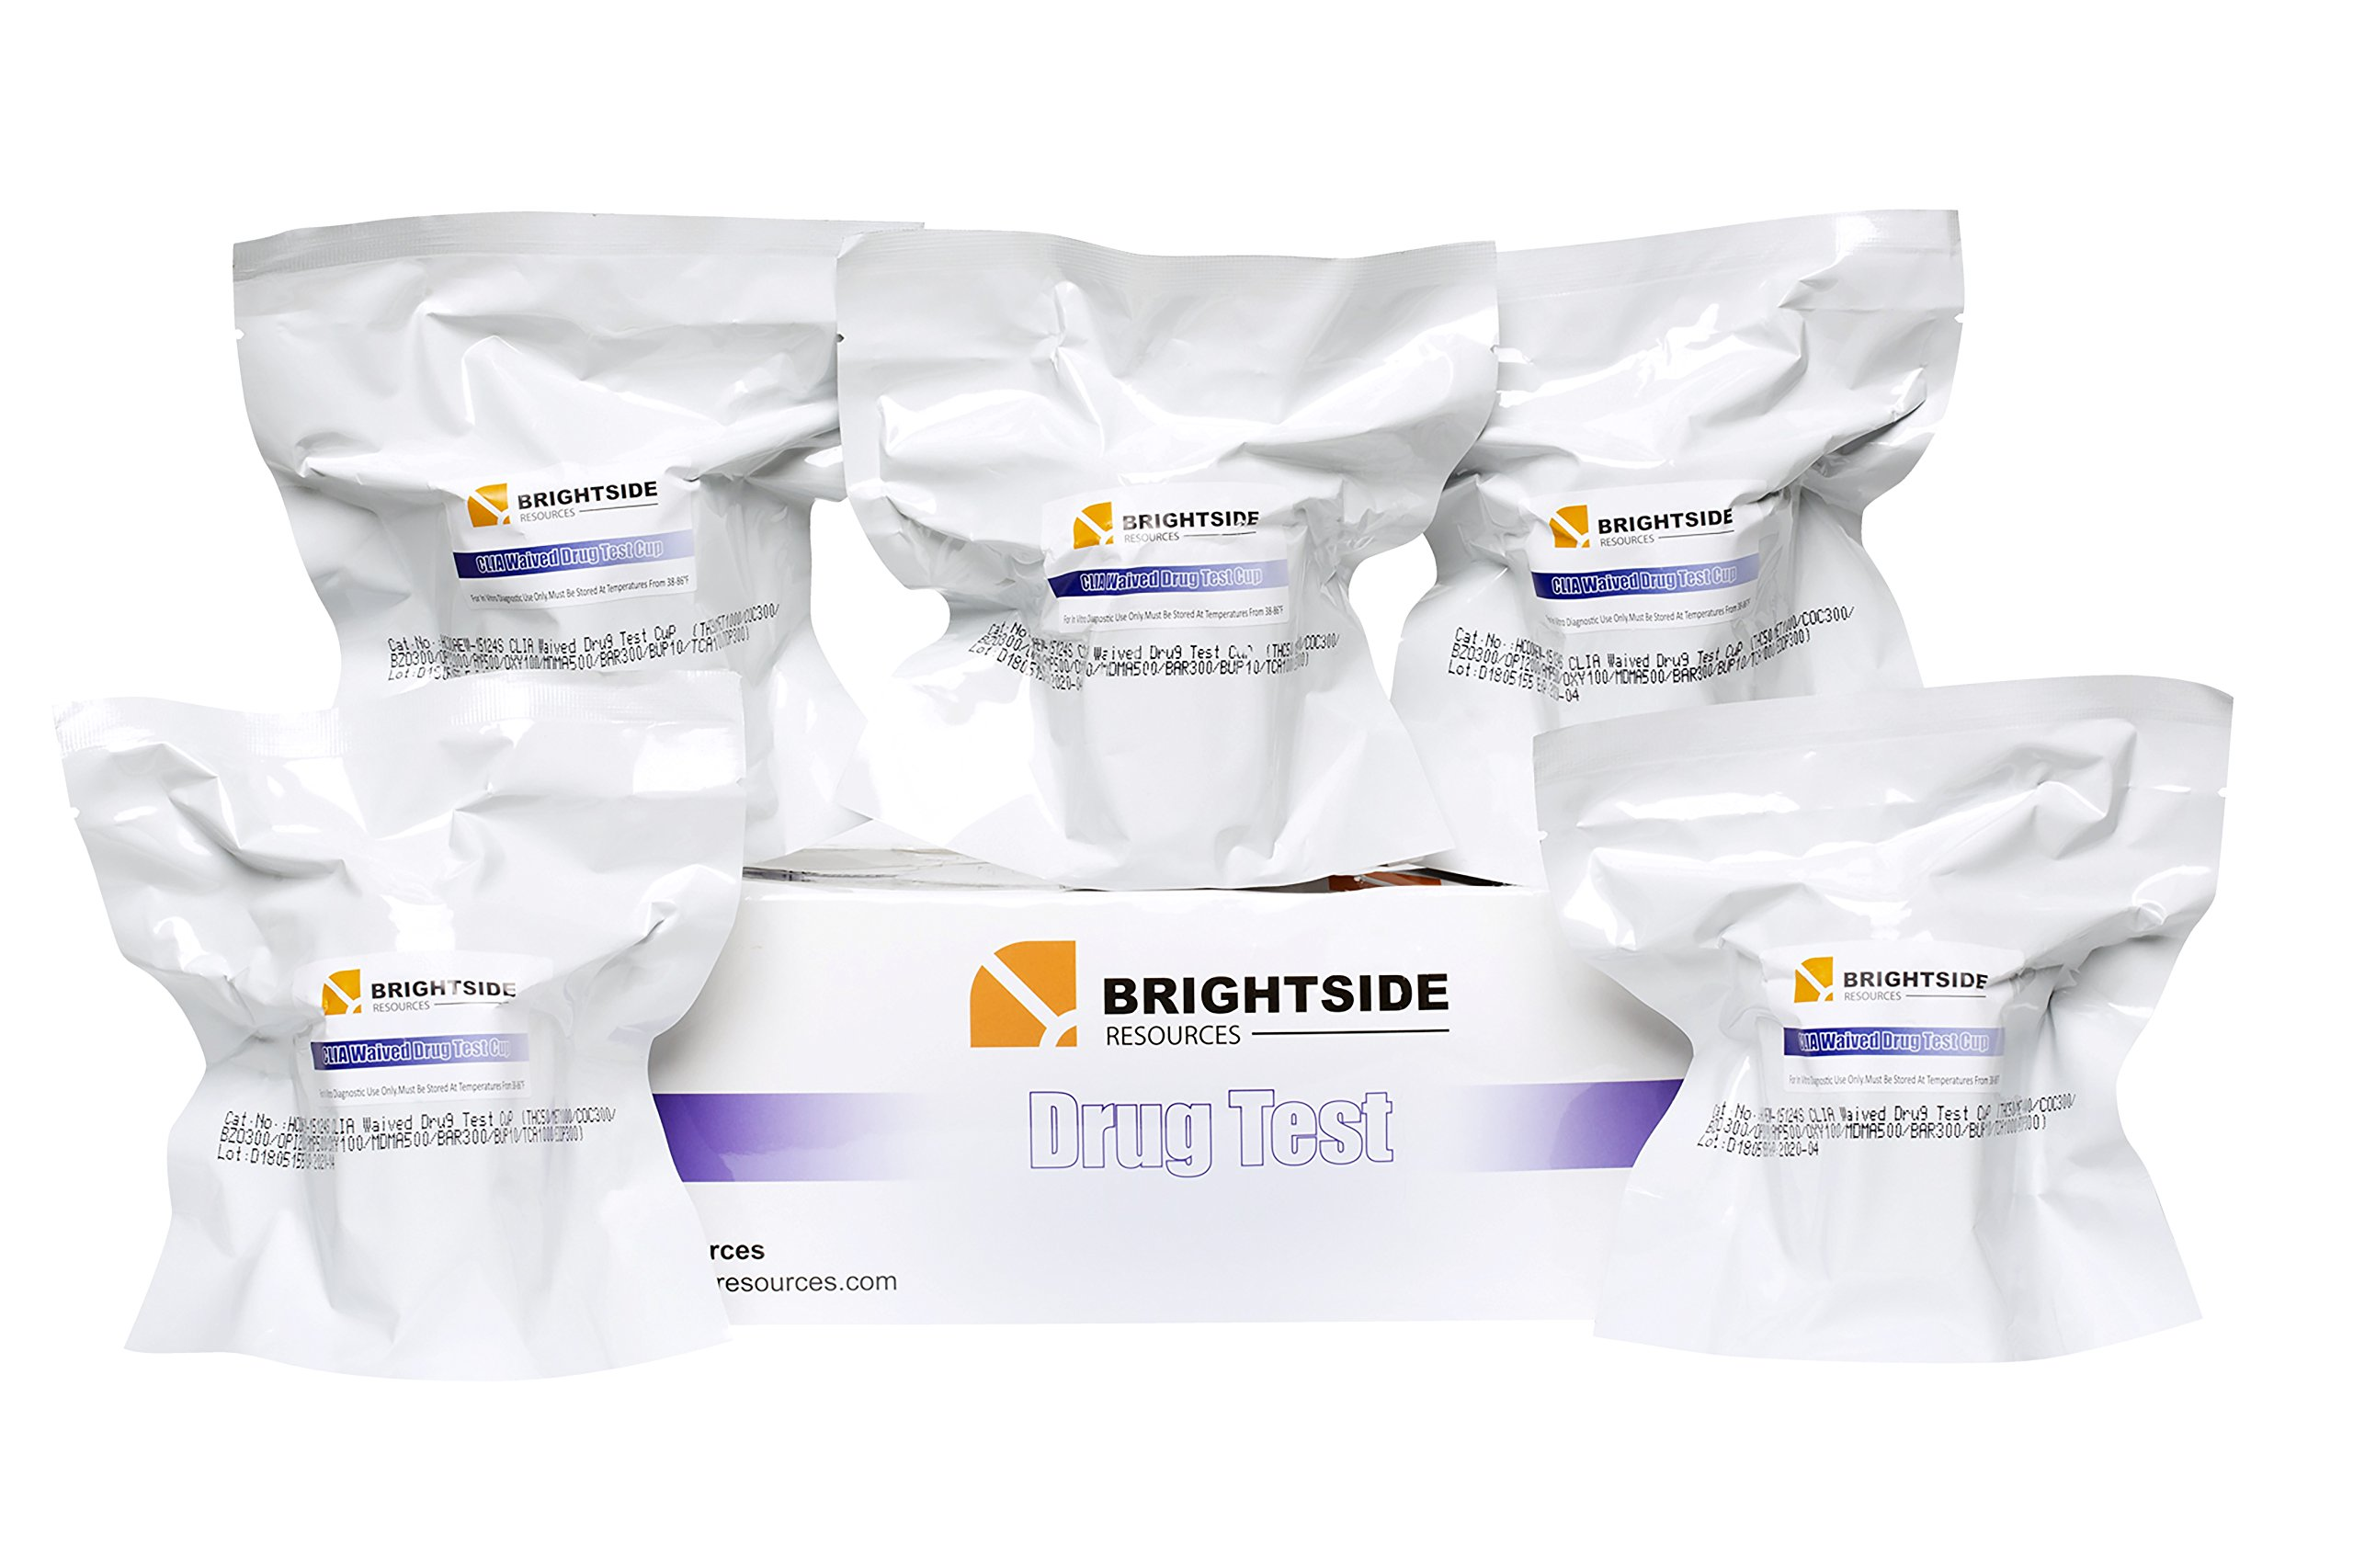 Brightside Resources 12 Panel Instant Urine Drug Test - Pack of 5 - for at Home & Medical Use - Accurate & Easy to Understand - THC, COC, OPI, OXY, Bar, TCA, MET, BZO, AMP, MDMA, BUP, Methadone by Brightside Resources (Image #7)